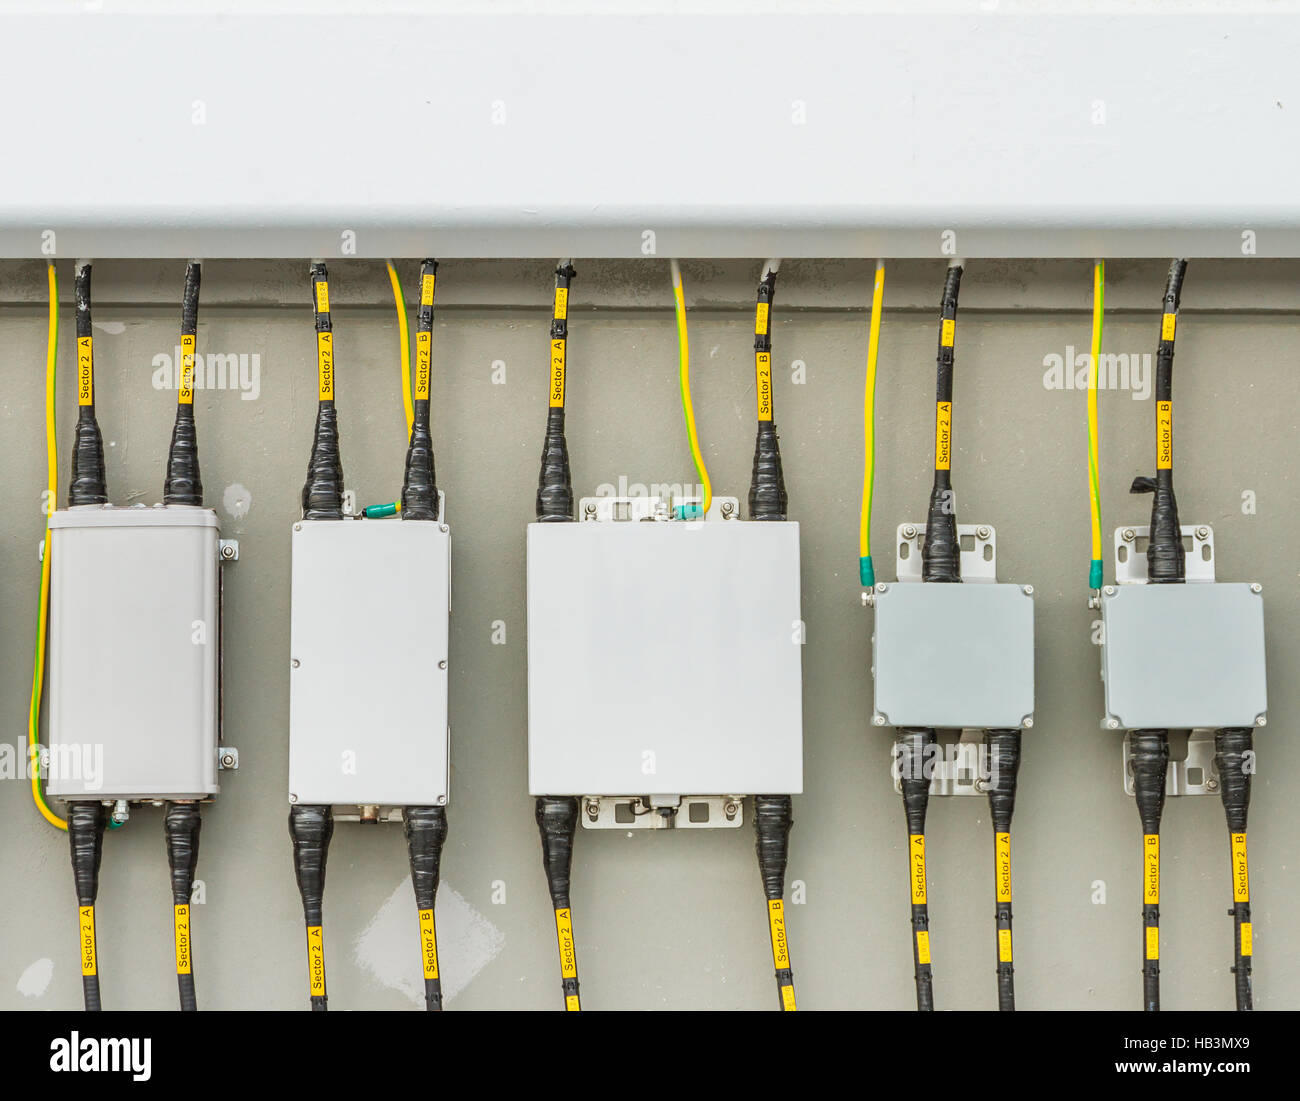 hight resolution of main circuit box breaker in factory stock image